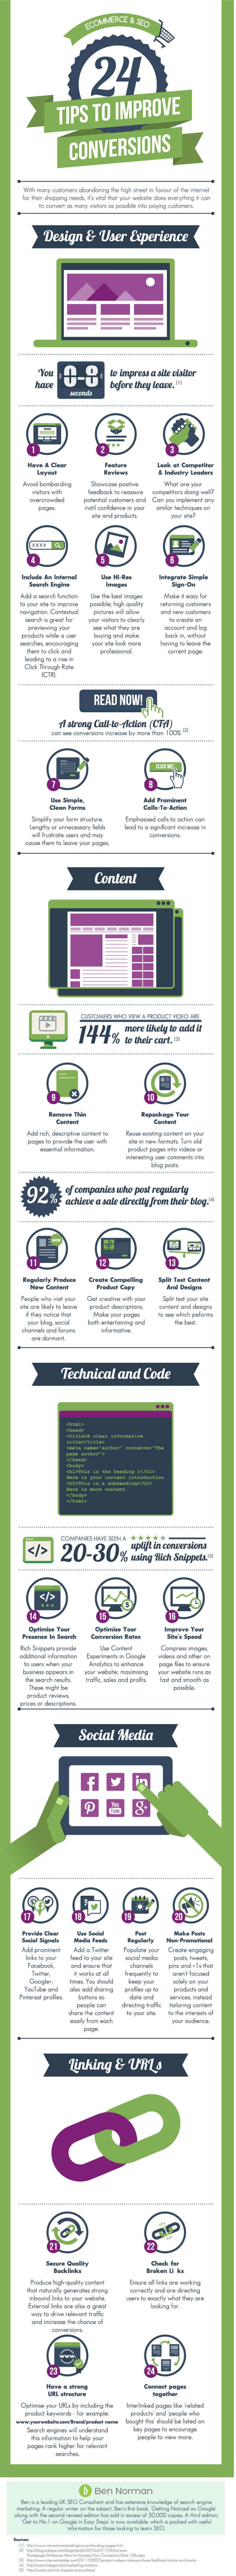 24 Tips To Improve Your Conversions Infographic